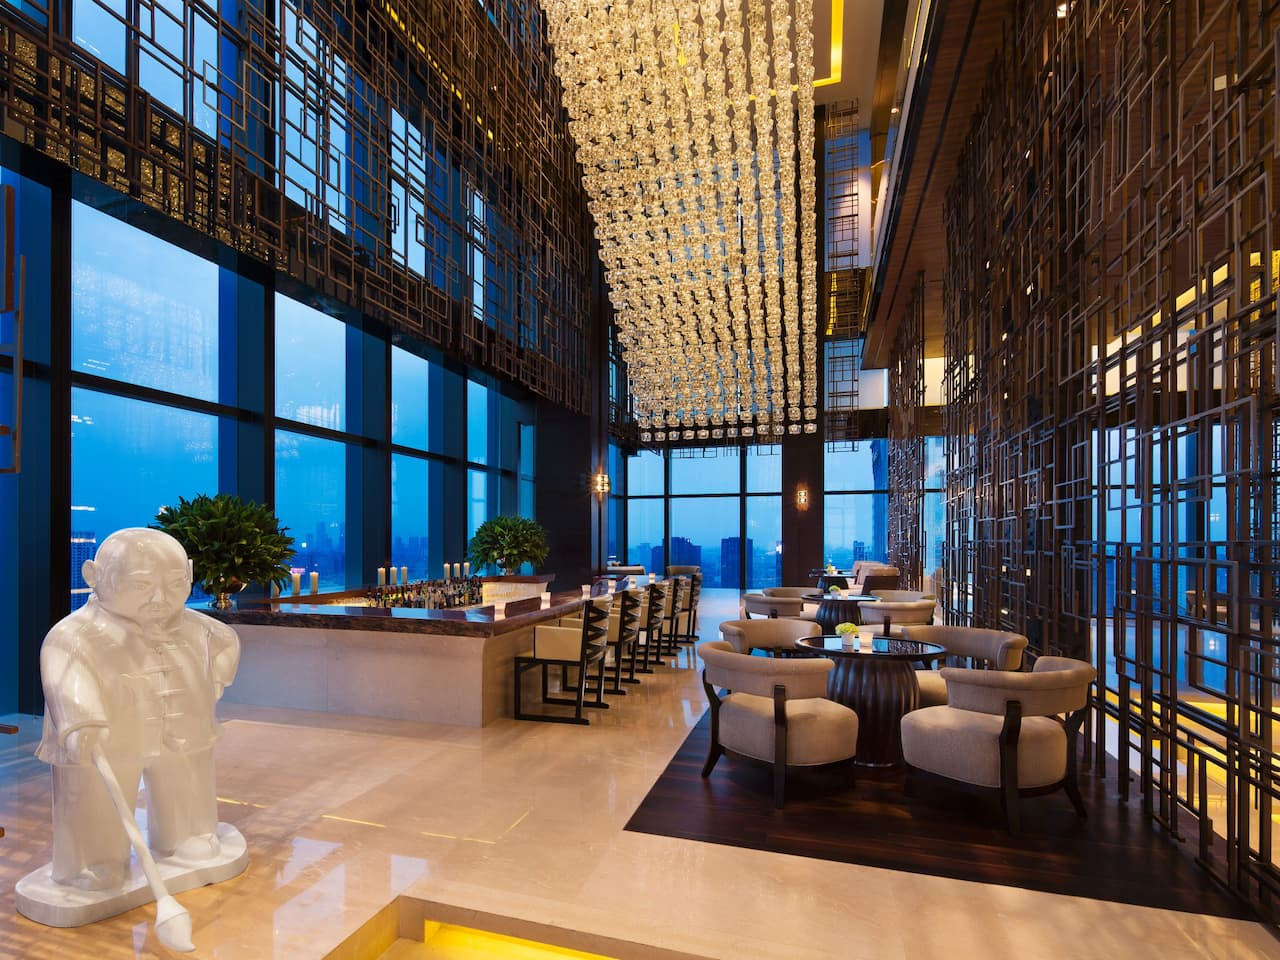 Hyatt Grand Shenyang Lobby Lounge